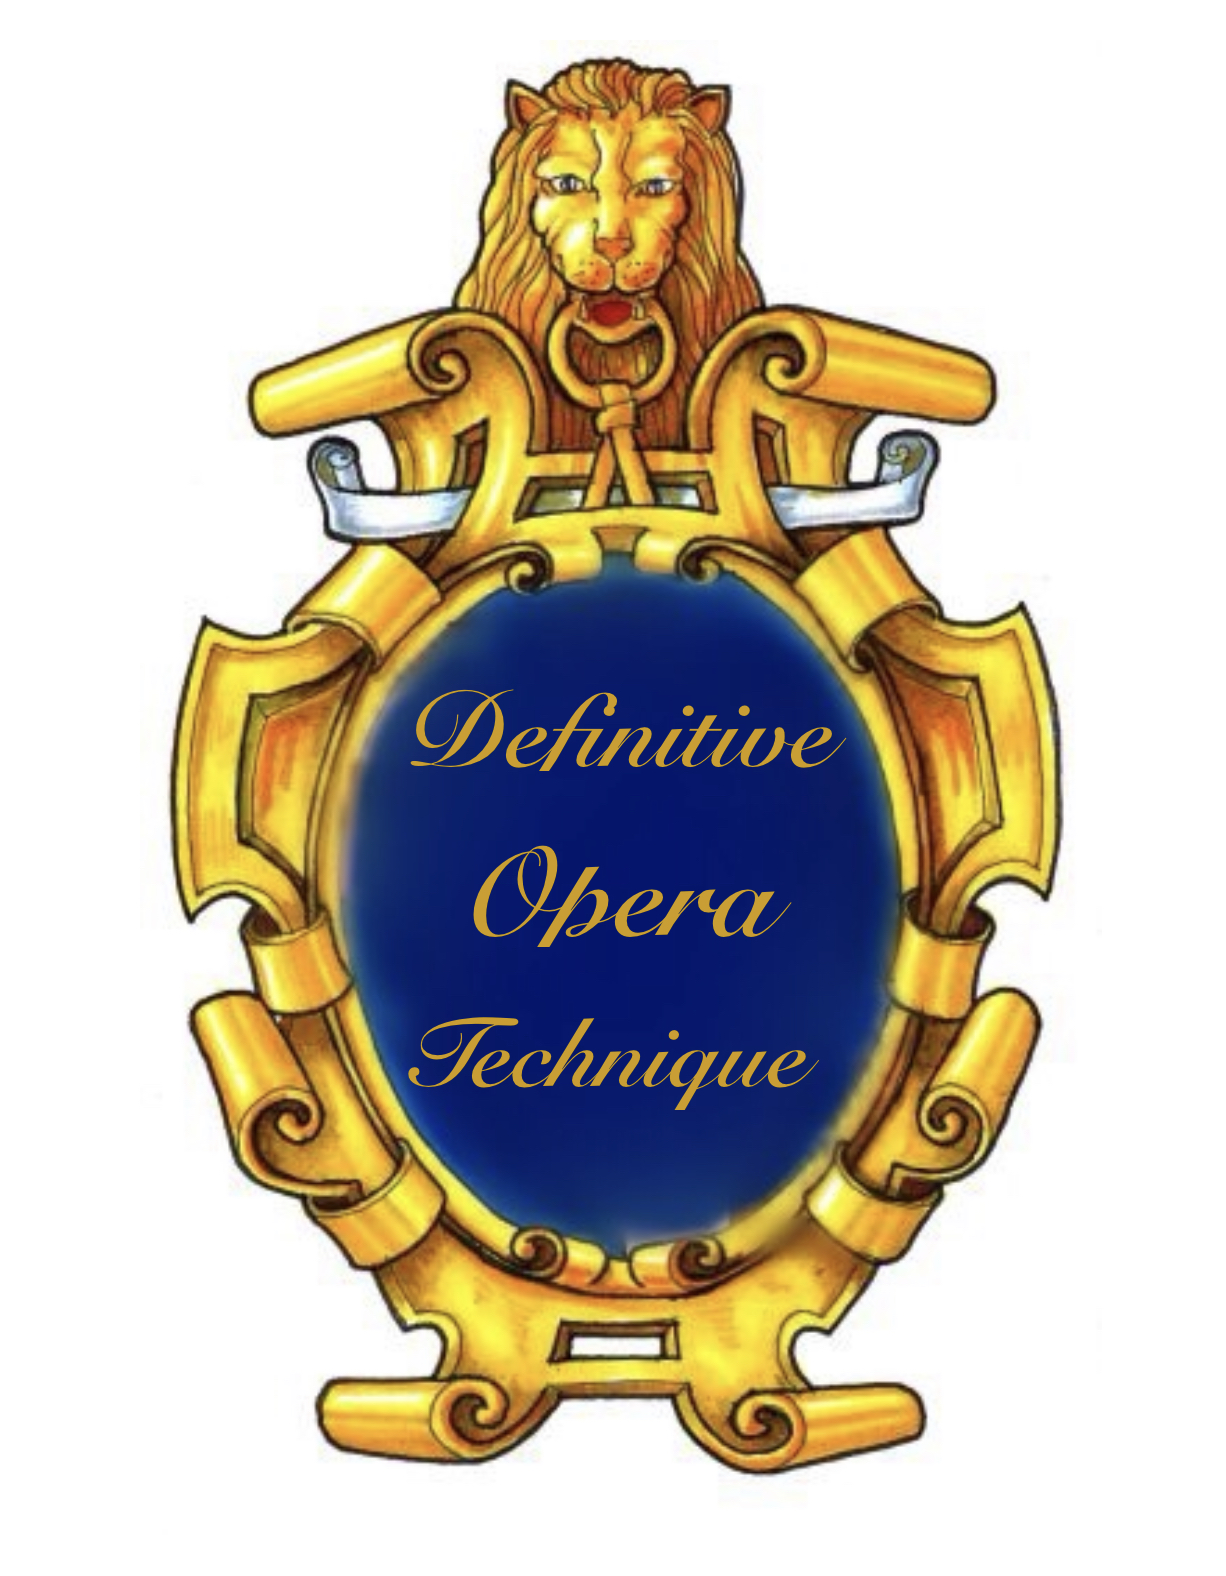 Definitive Opera Technique by Carlo Colombara